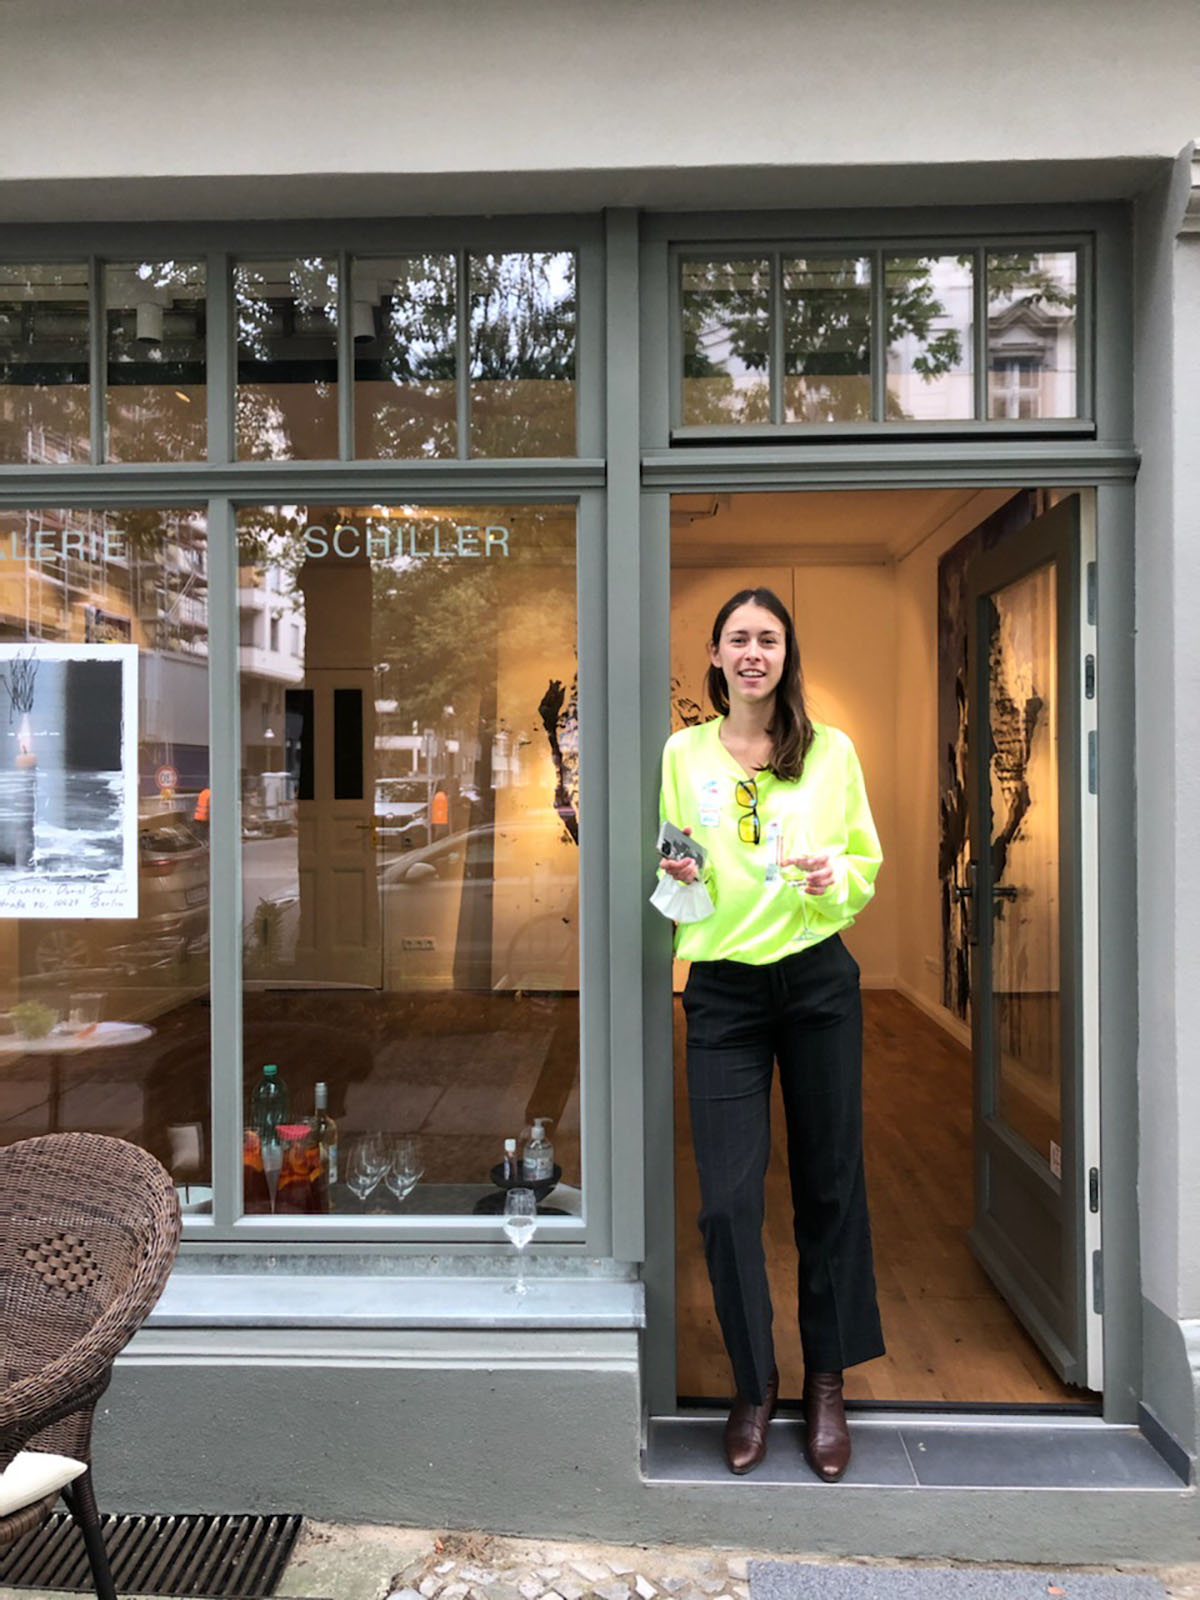 Lina Sophie Stallmann, founder and co-owner of Stallmann Gallery Berlin